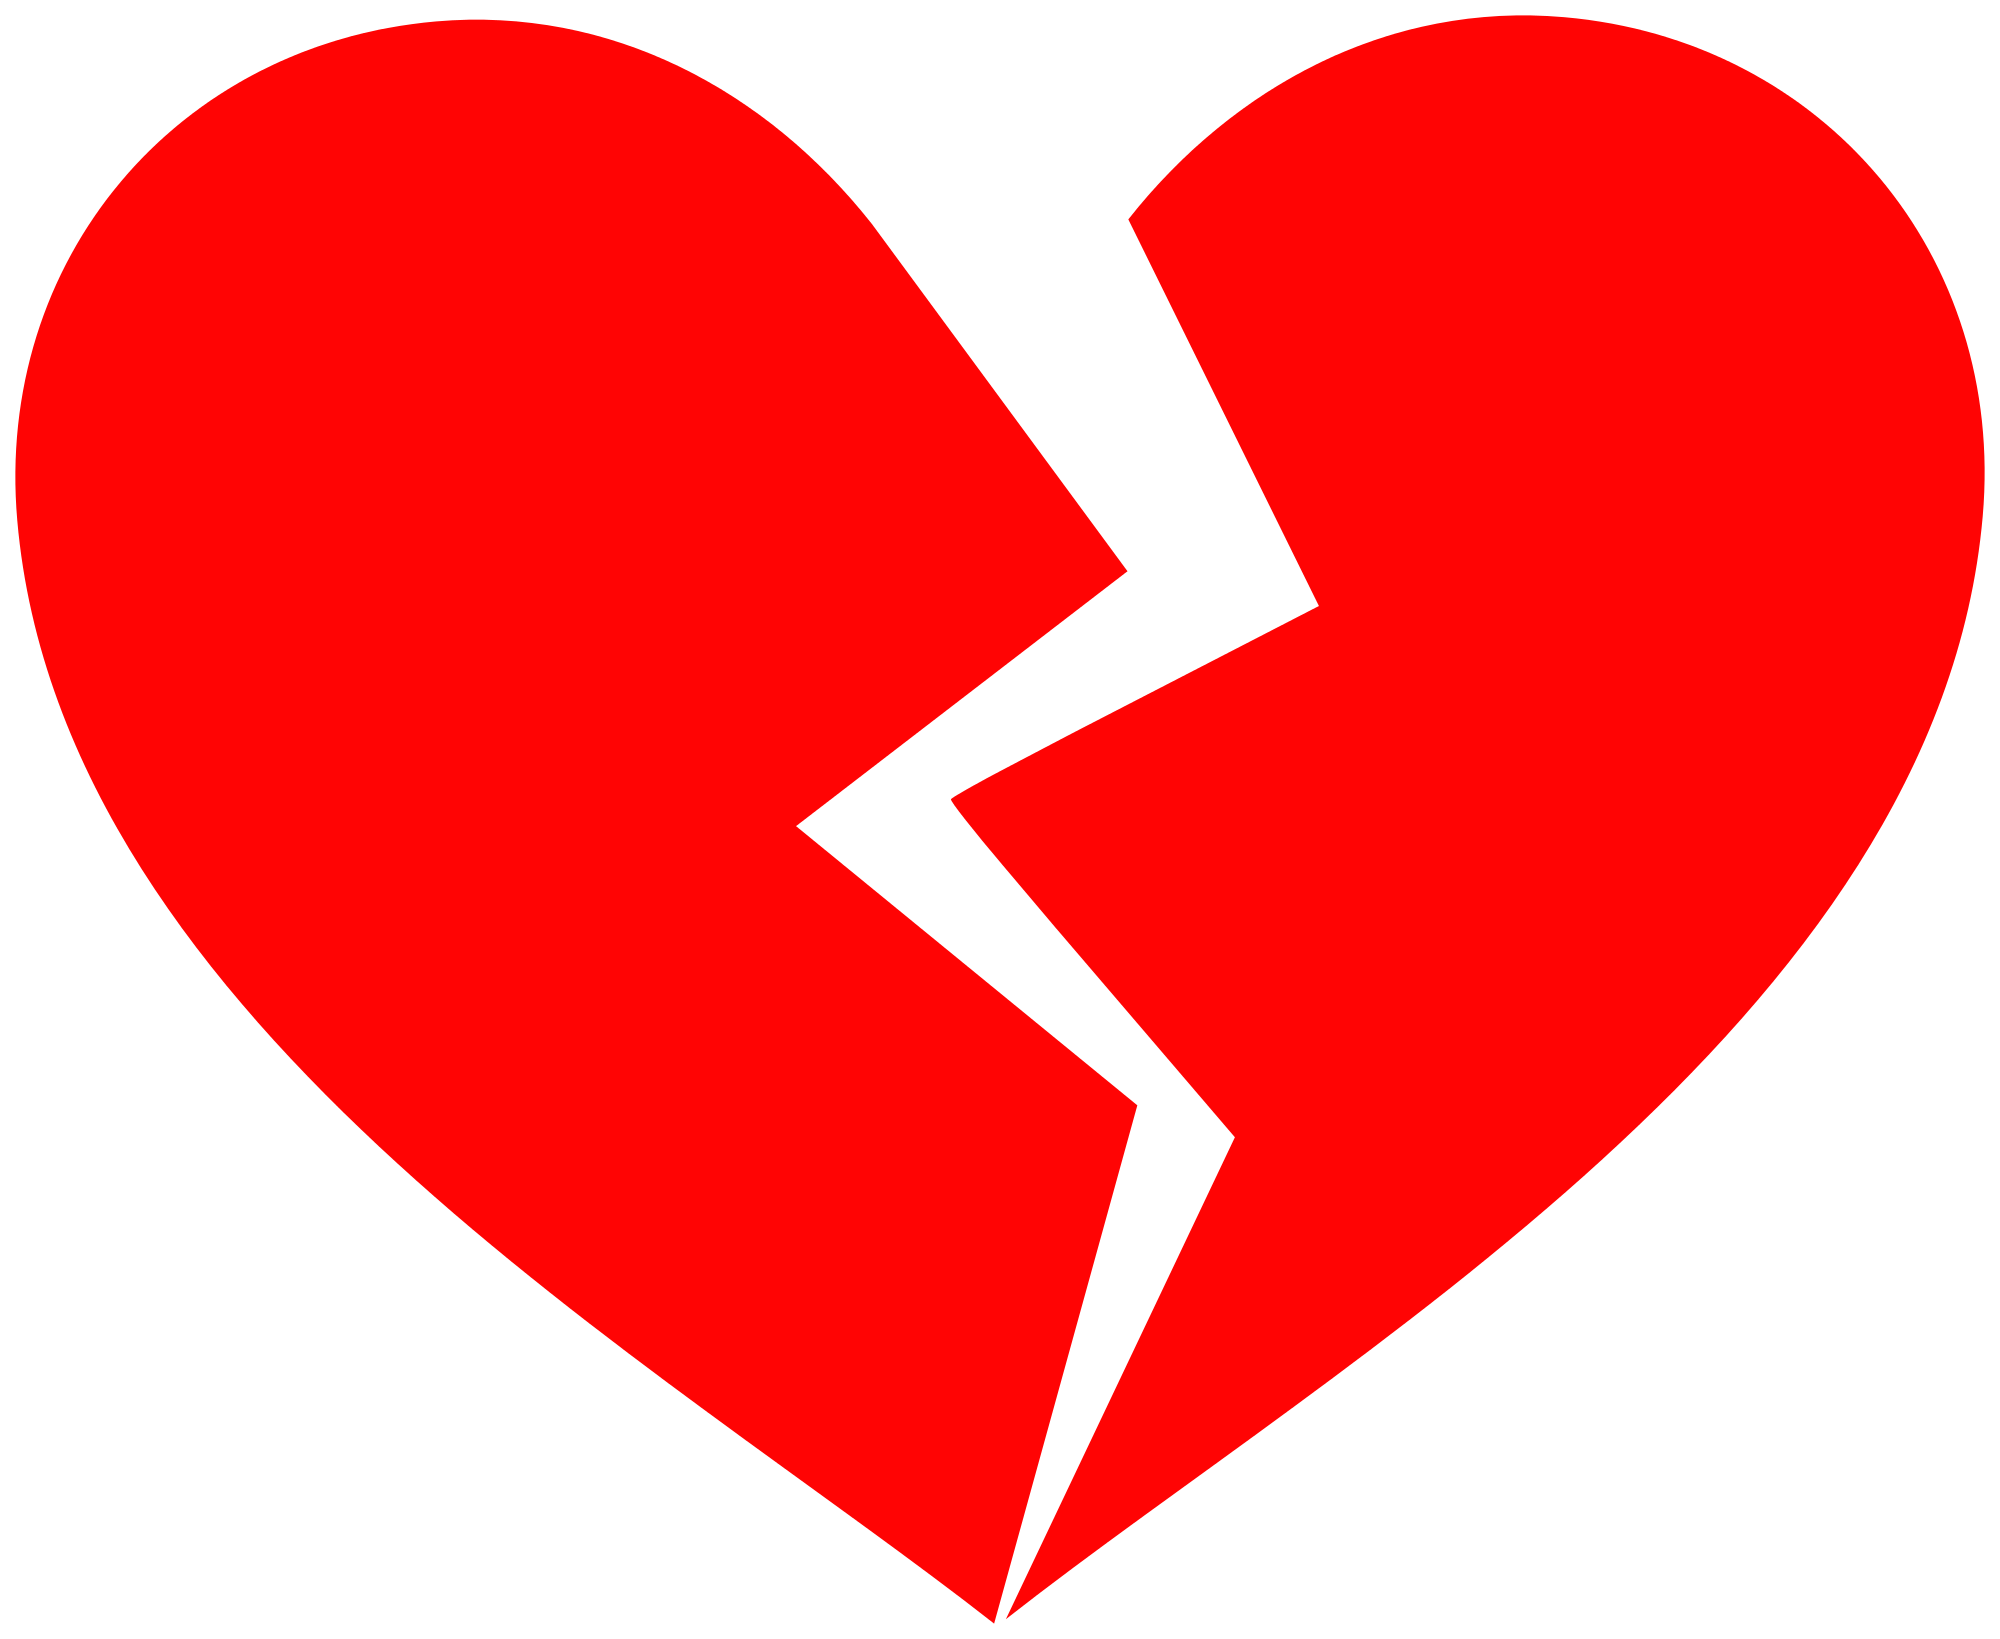 Free Download Broken Heart Png Images